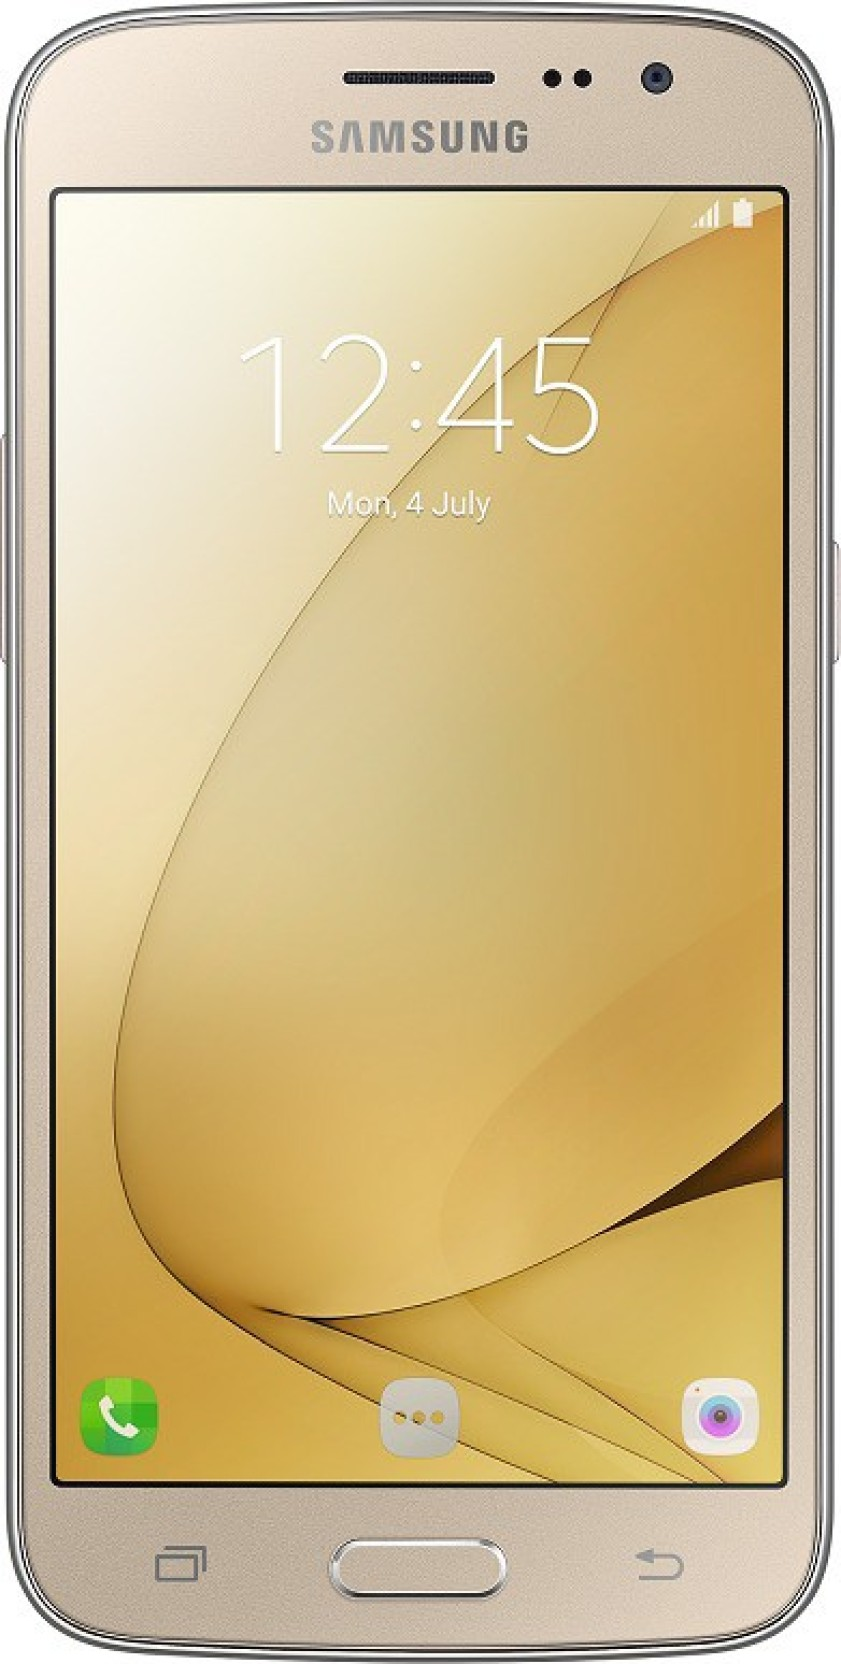 Samsung Galaxy J2 Pro Gold 16 Gb Online At Best Price Only On Sgh N620 Service Manual Offer